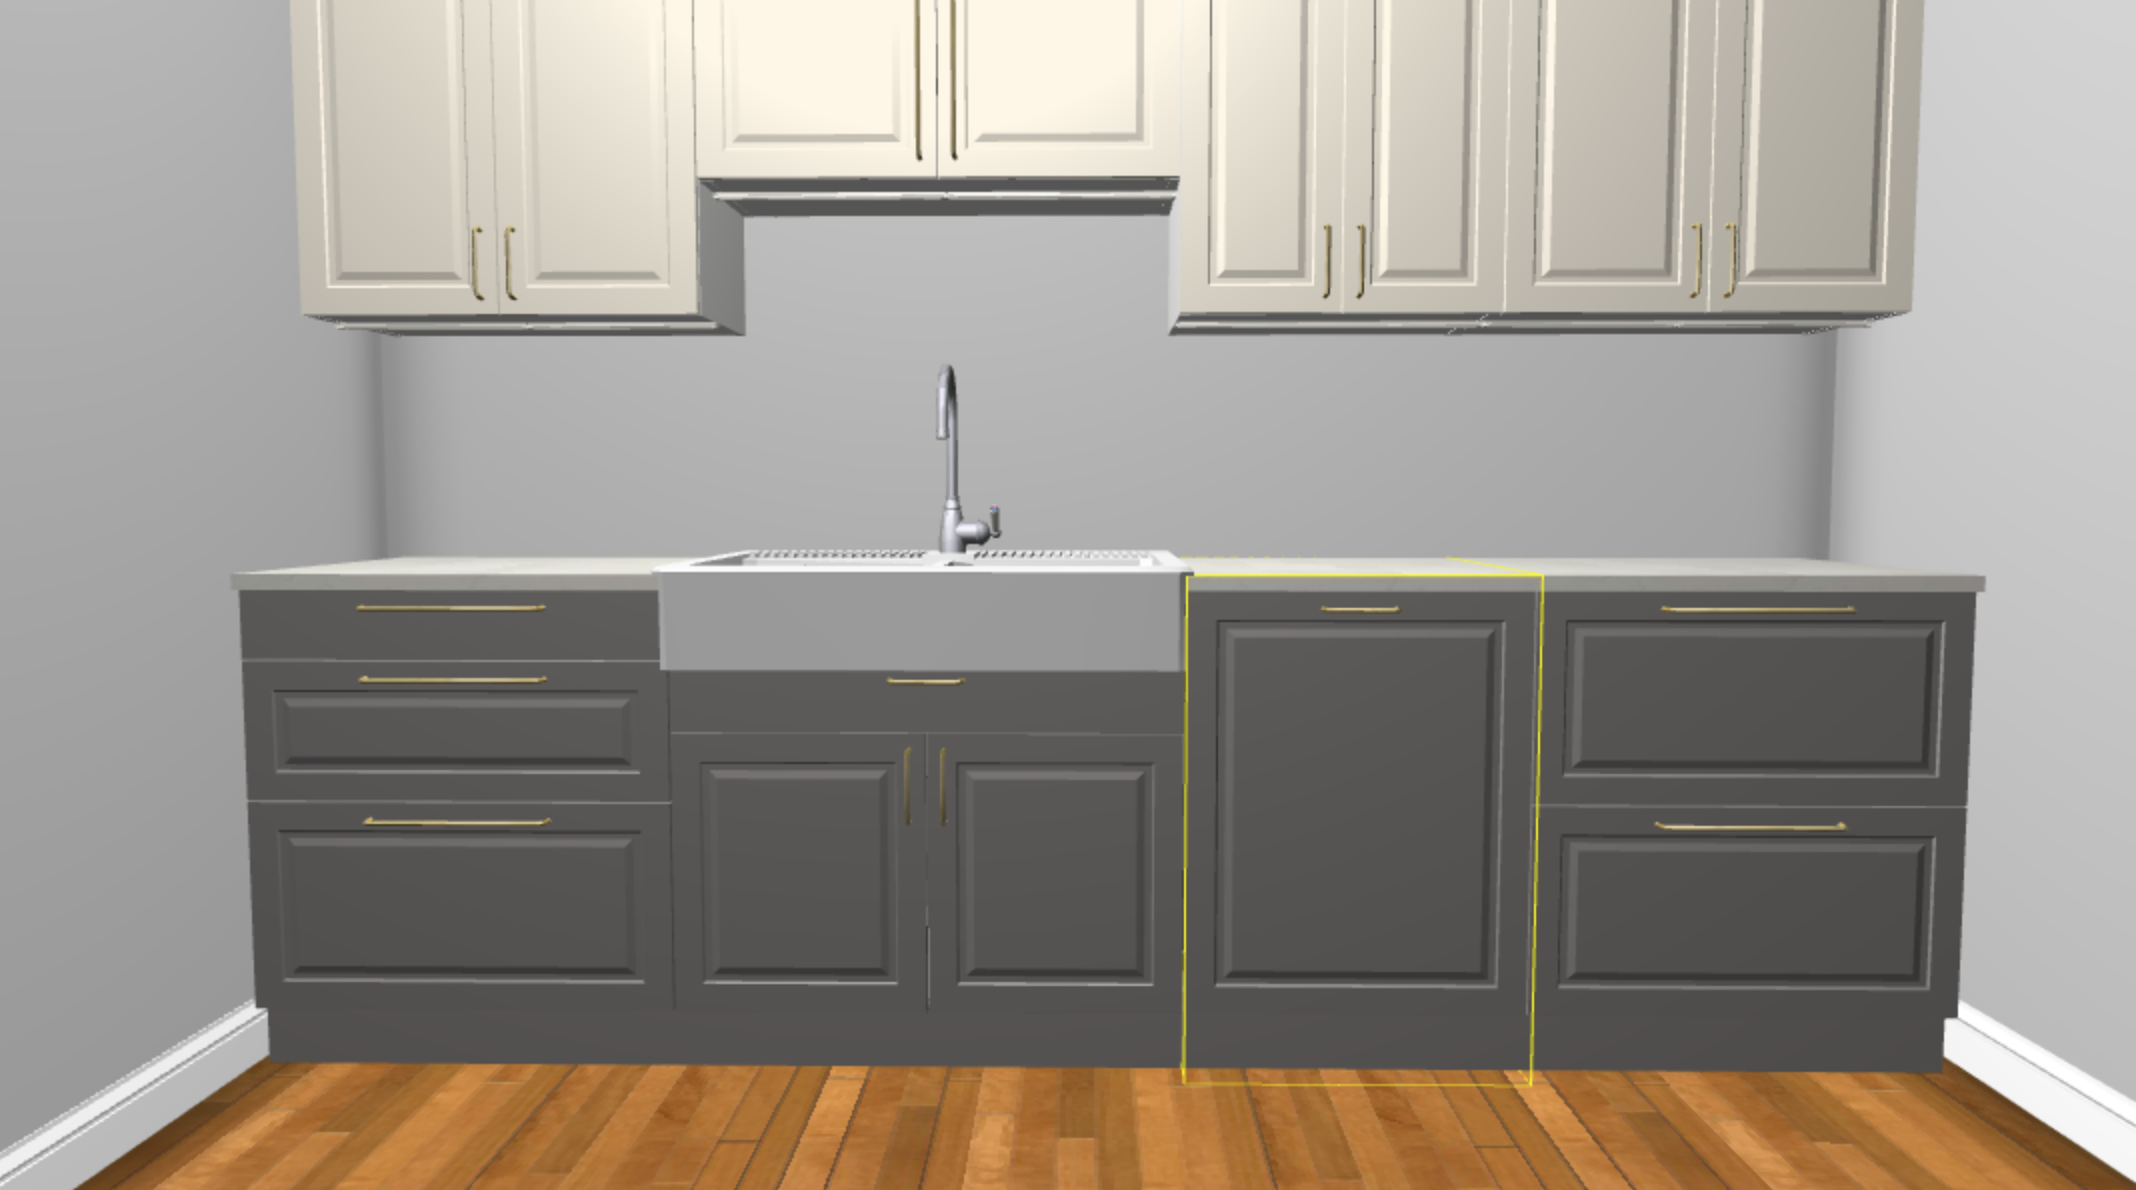 View from the sink side in the Ikea Planner Tool. I couldn't get the full view, but all that's missing is the top of the upper cabinets so you get the idea.